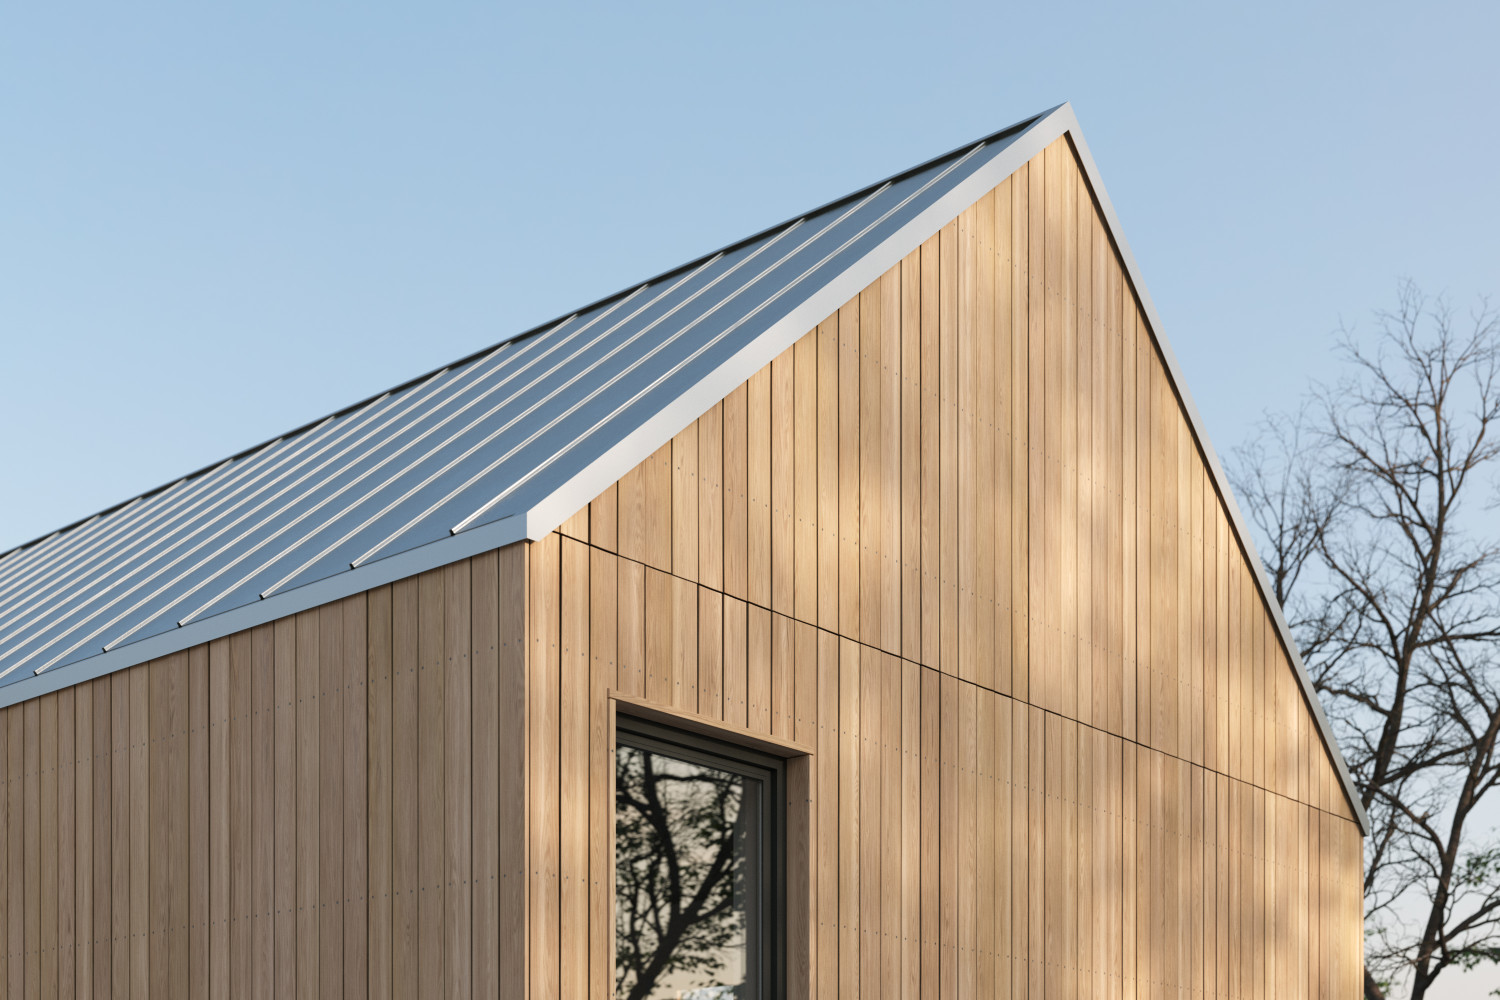 Larch cladding texture